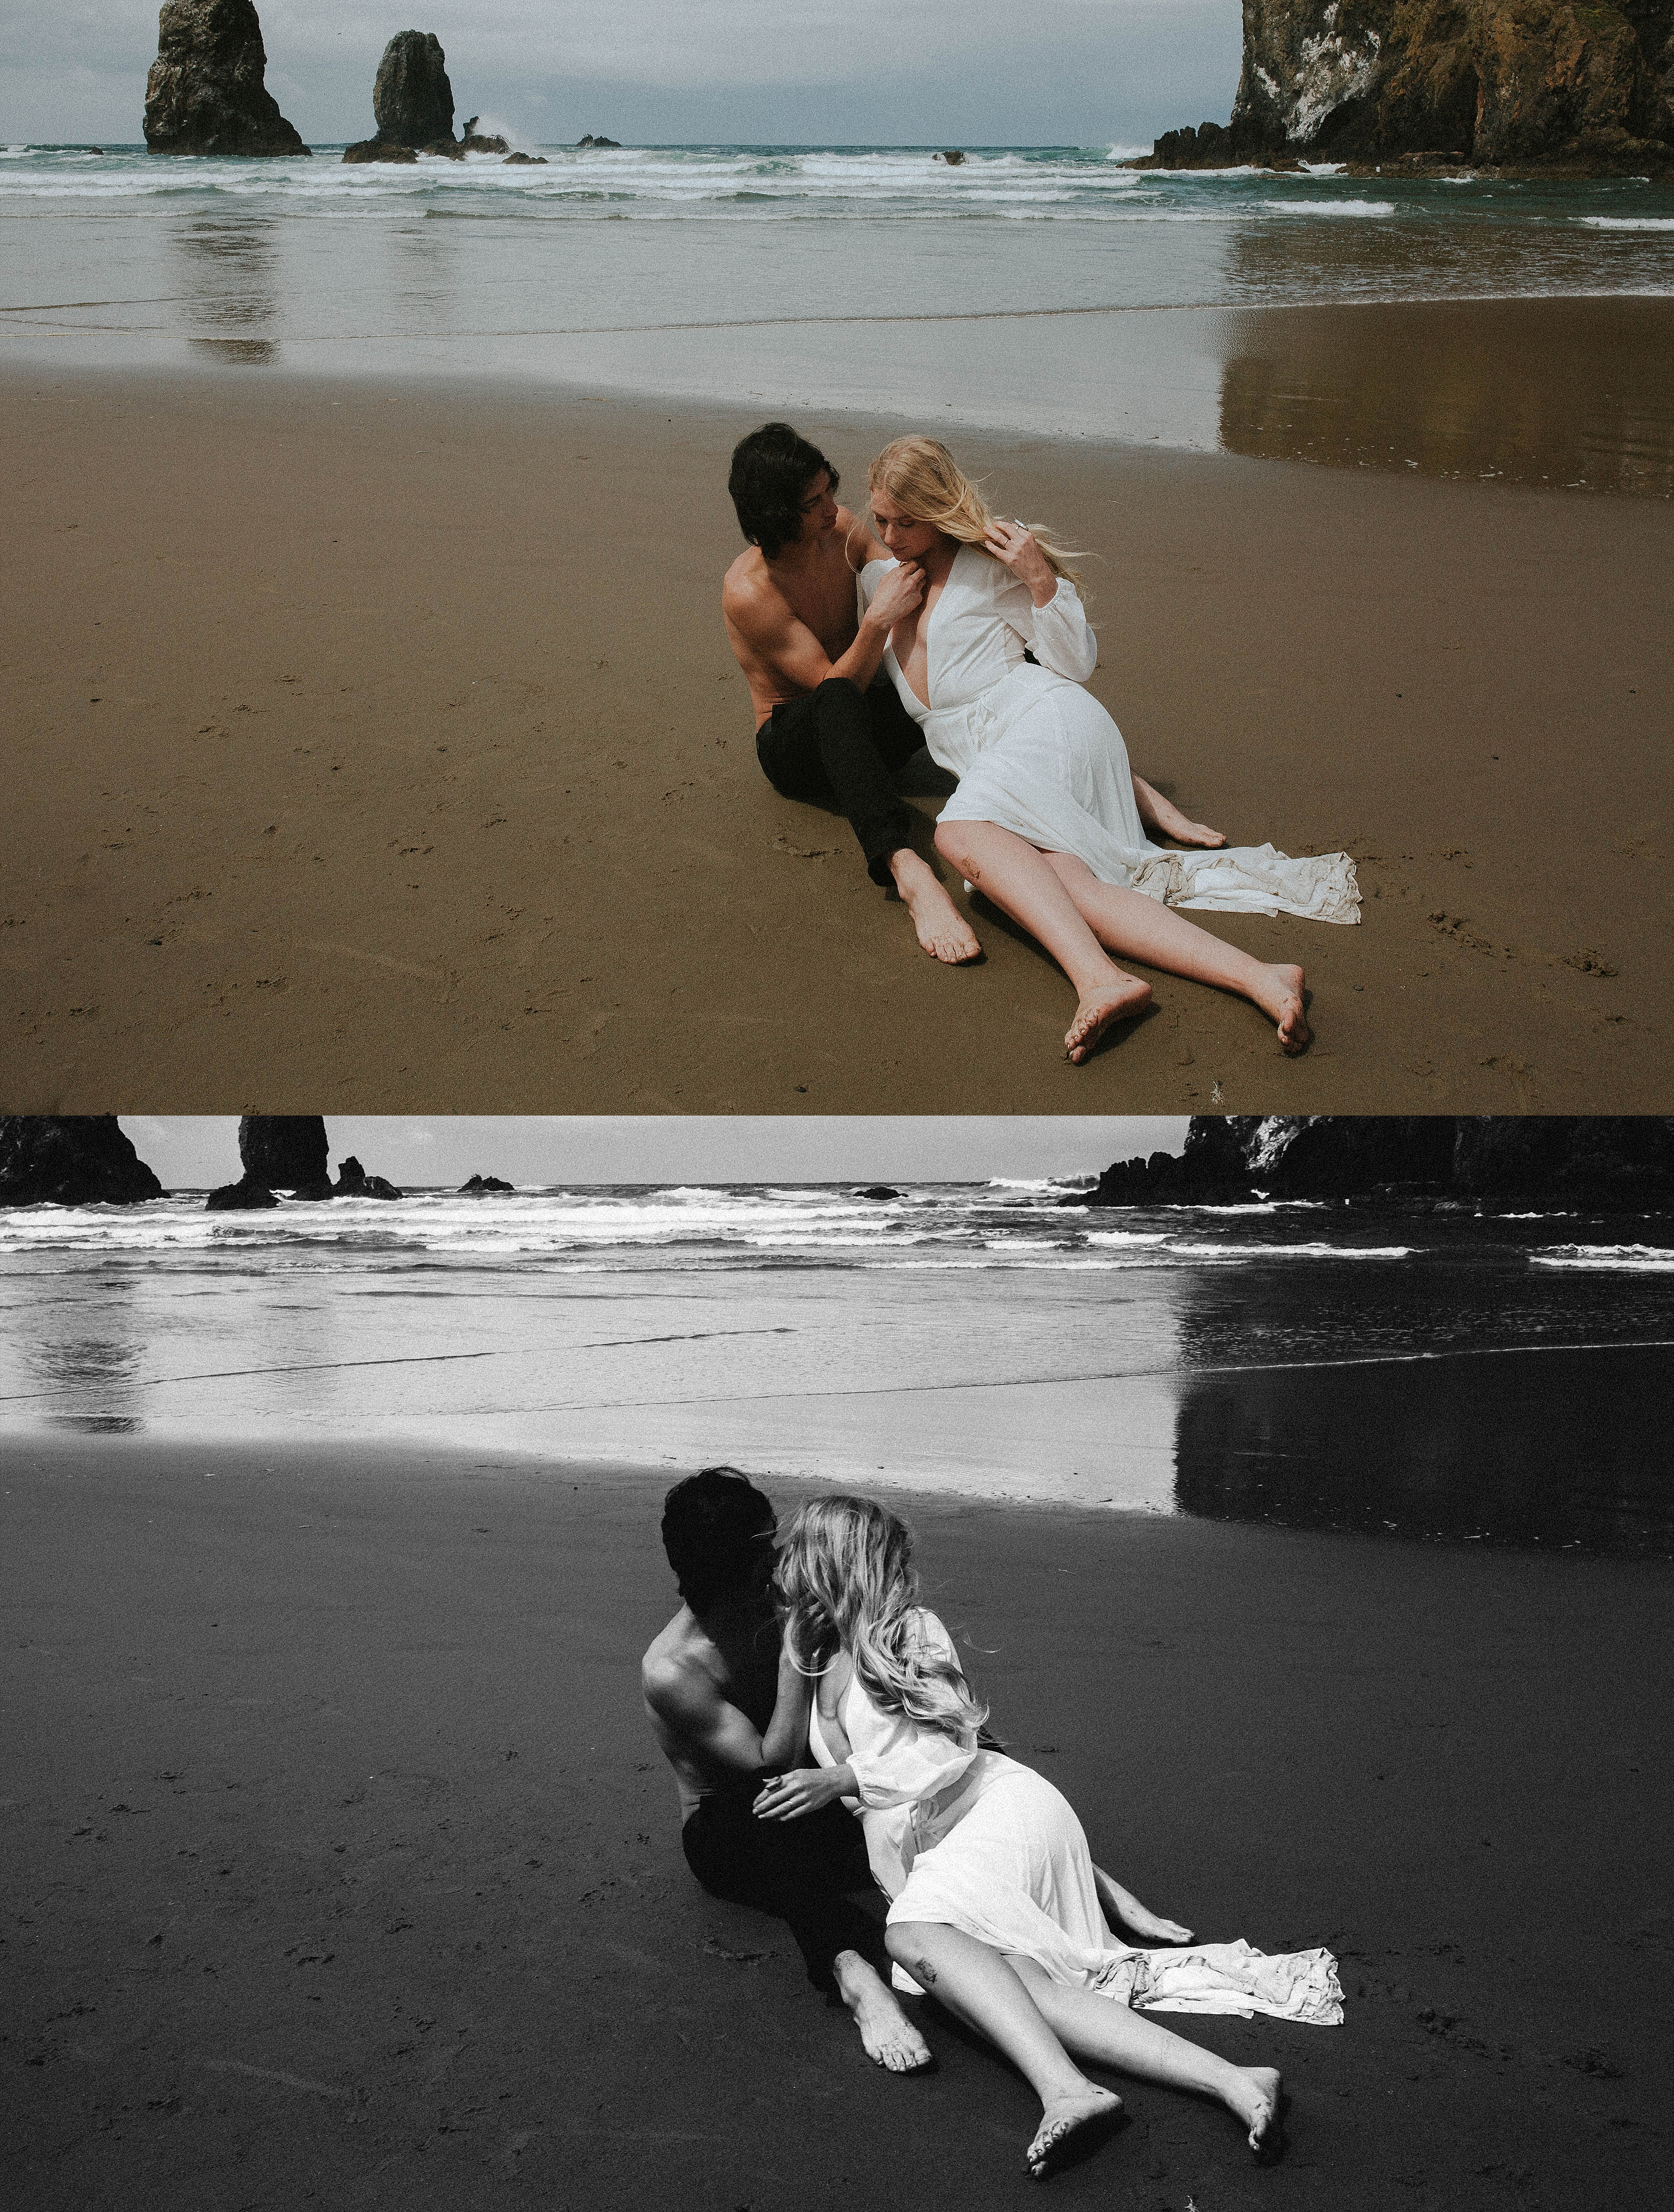 Couples on a beach Adri de la cruz Chicago intimate wedding photographer (2)